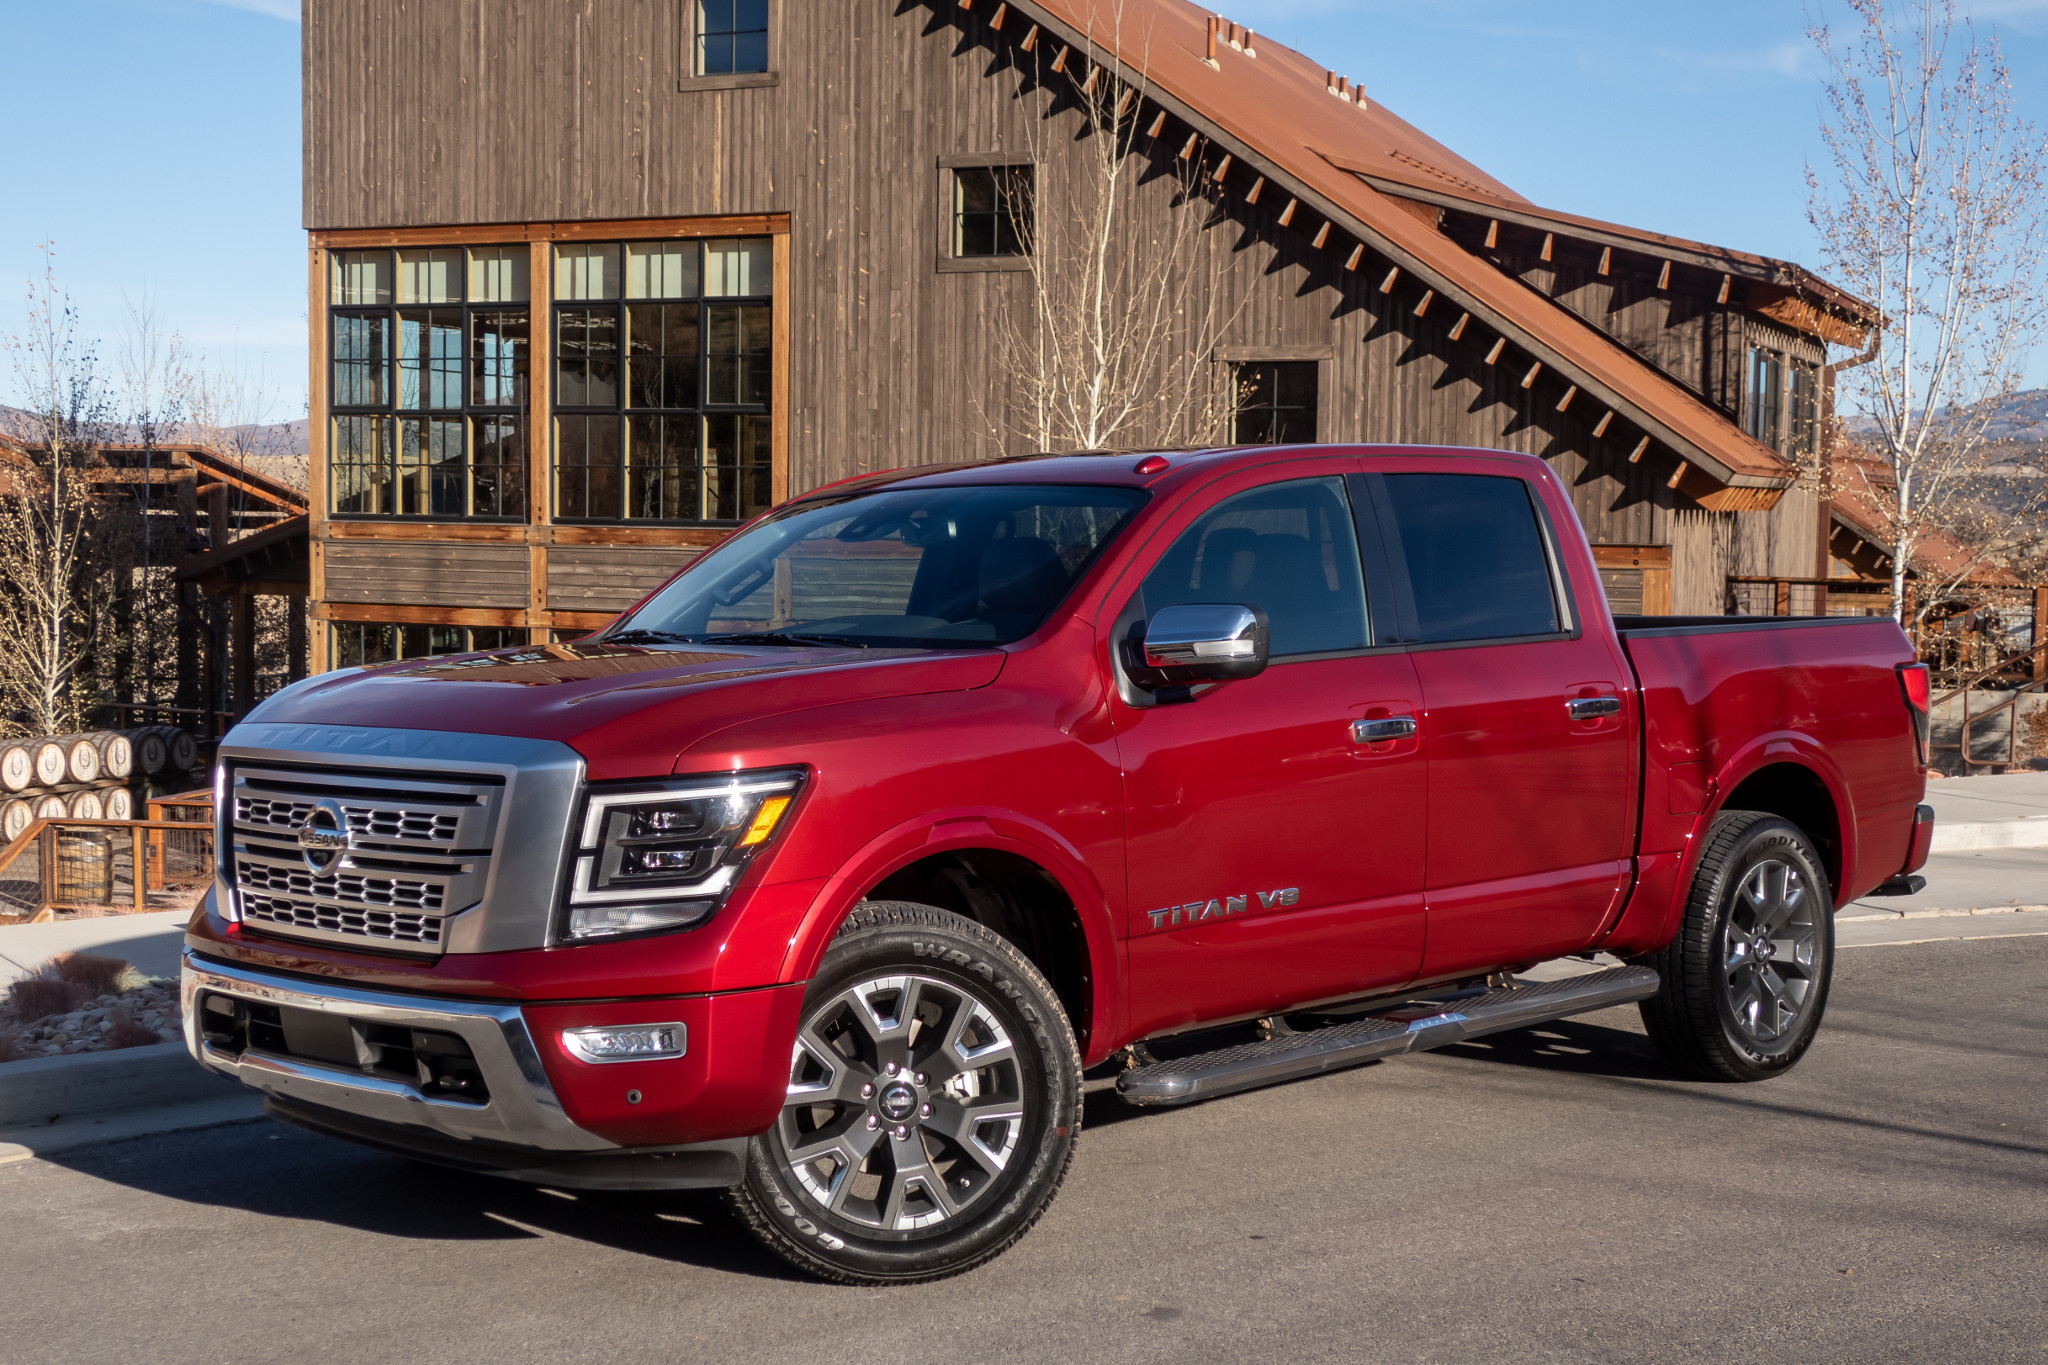 2020 Nissan Titan Review: No Longer a 'Yeah, But' Truck